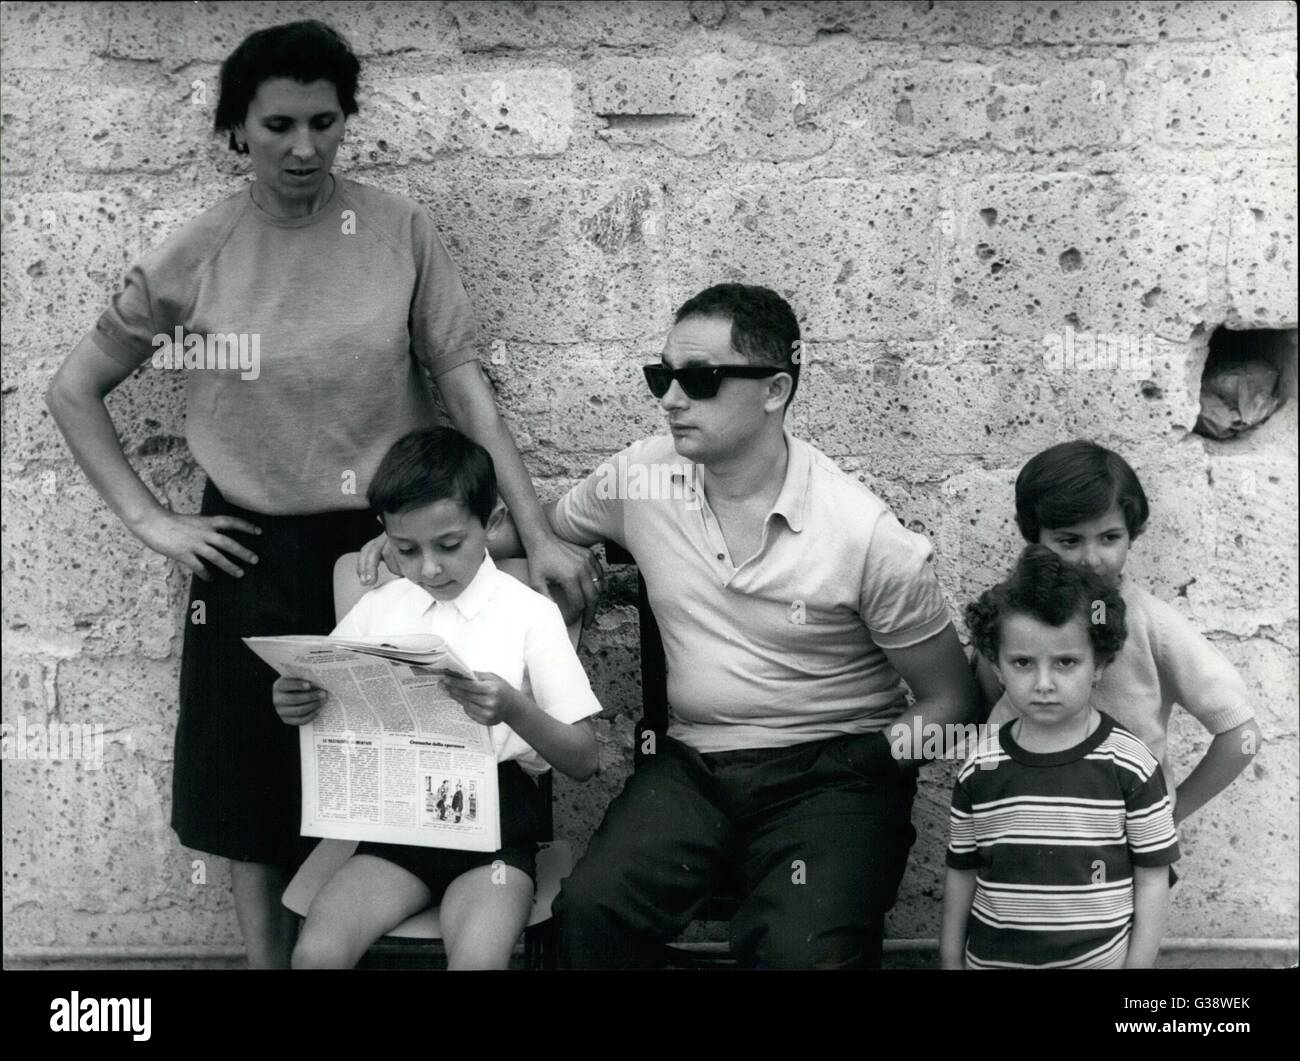 1965 - New York Romanian mob mobster family children ...